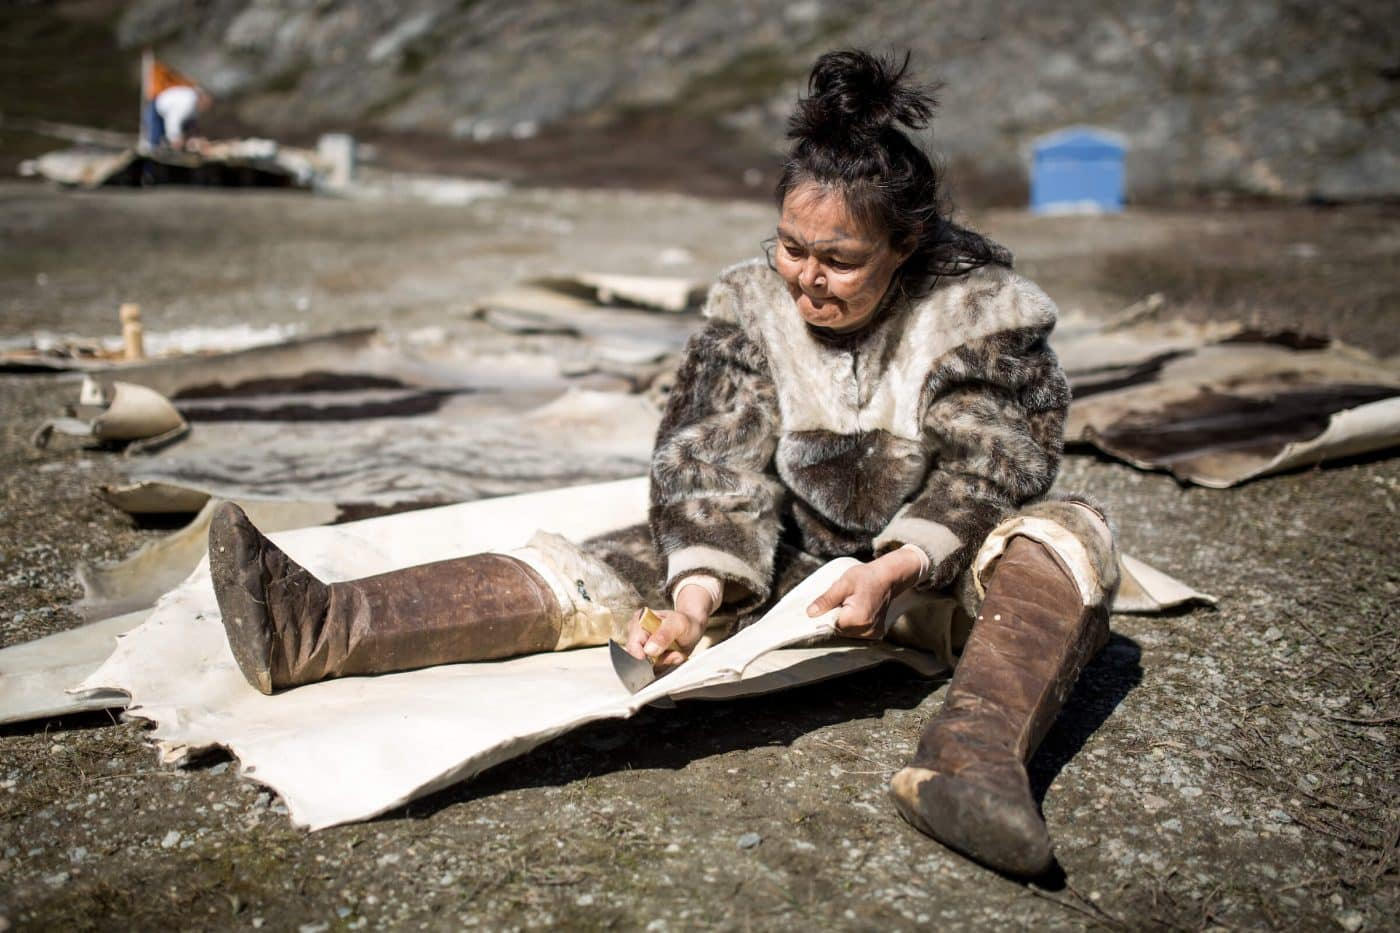 A woman carving seal skin for a tent at the living village museum in Qasigiannguit in Greenland, by Mads Pihl